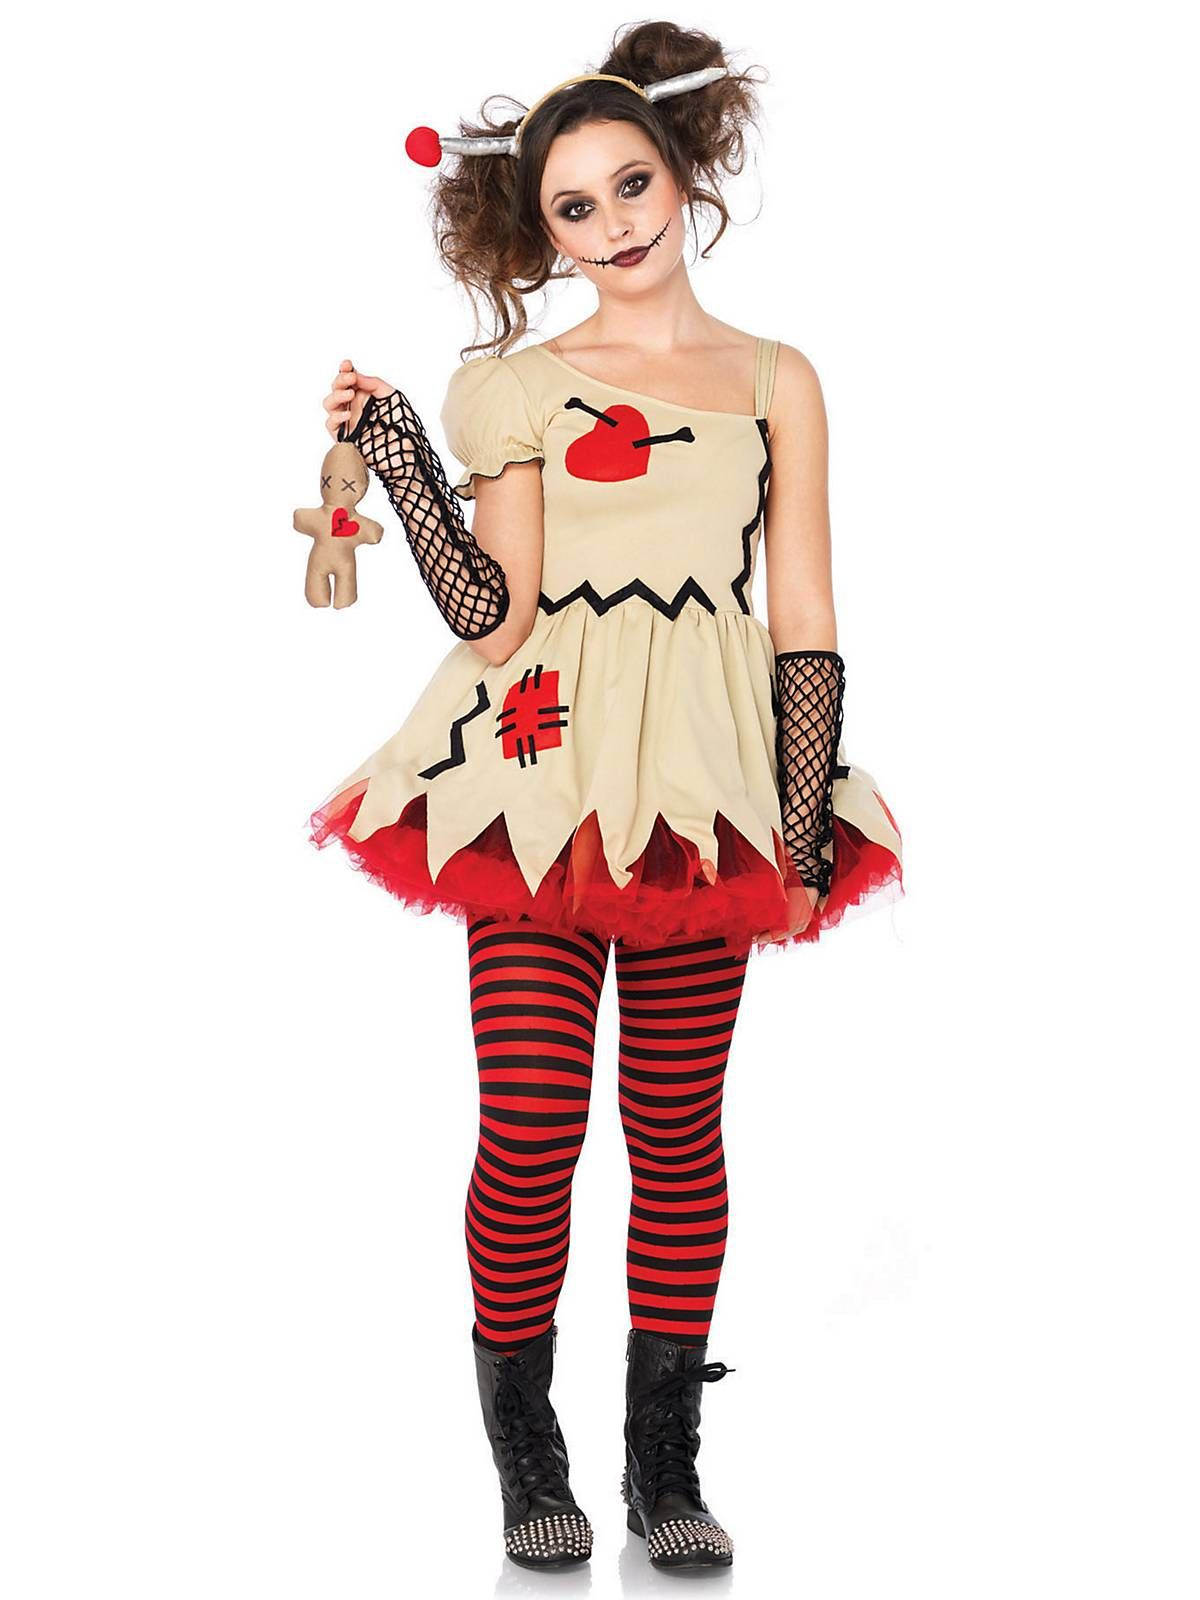 Wind Up Doll Costume For Kids | Doll Costumes | Pinterest ...